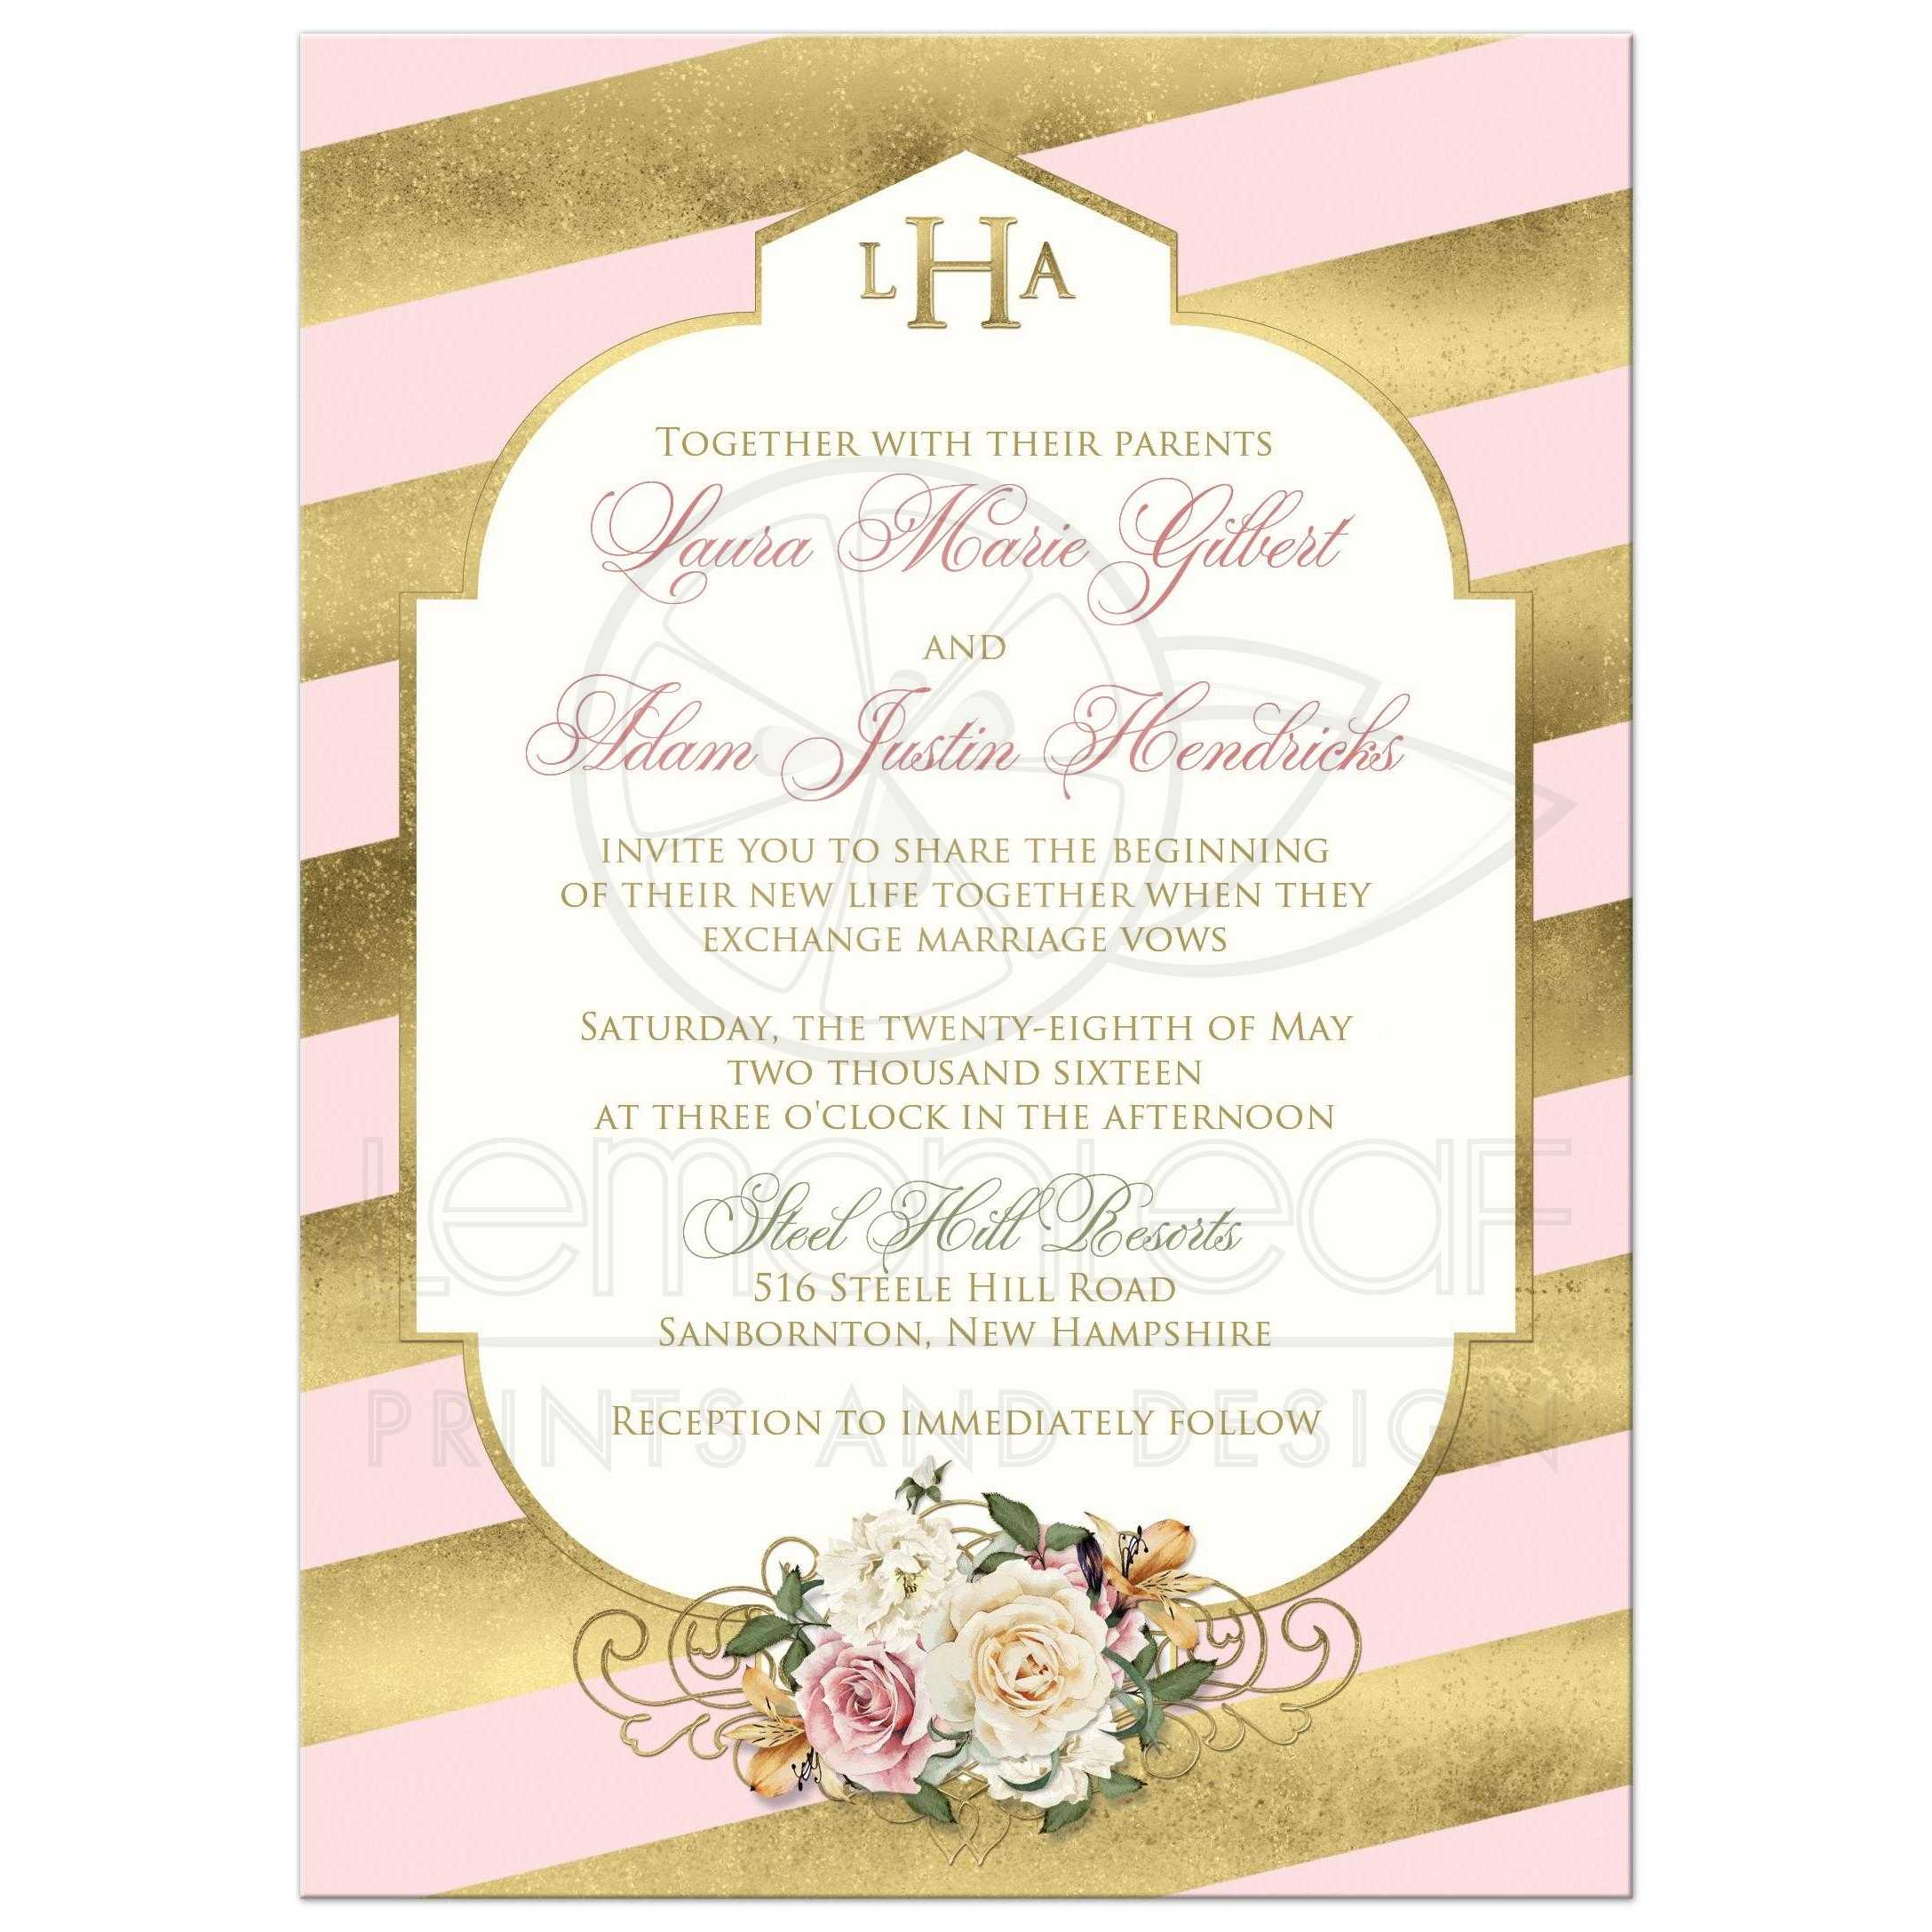 Baptism Invitation Designs with amazing invitations ideas